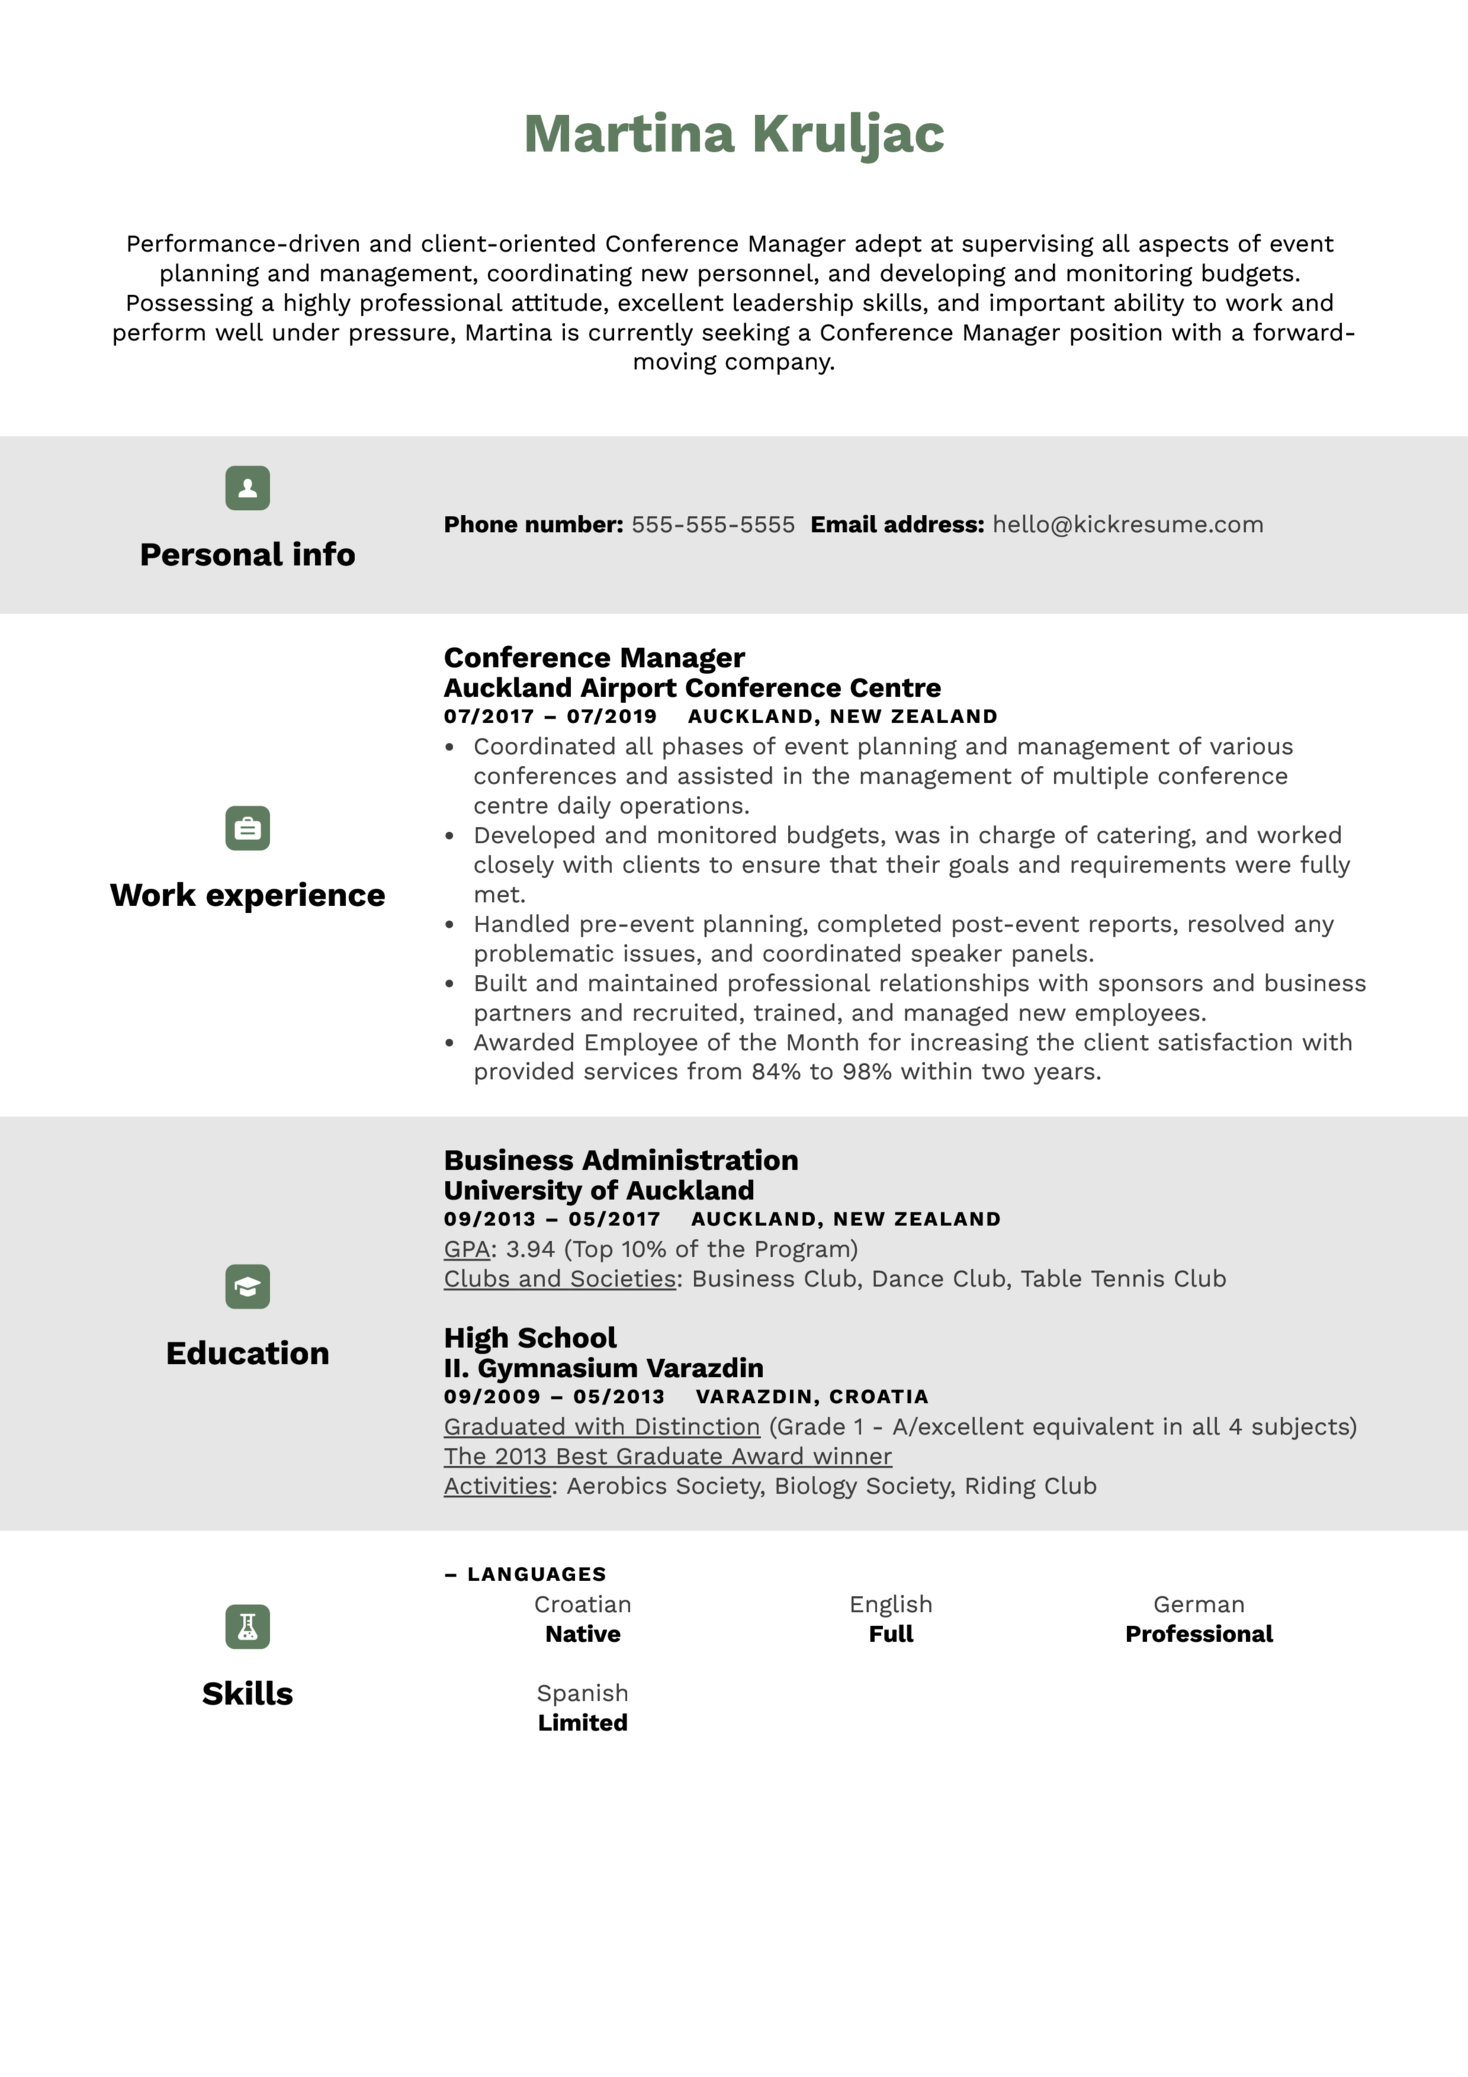 Conference Manager Resume Sample (Part 1)